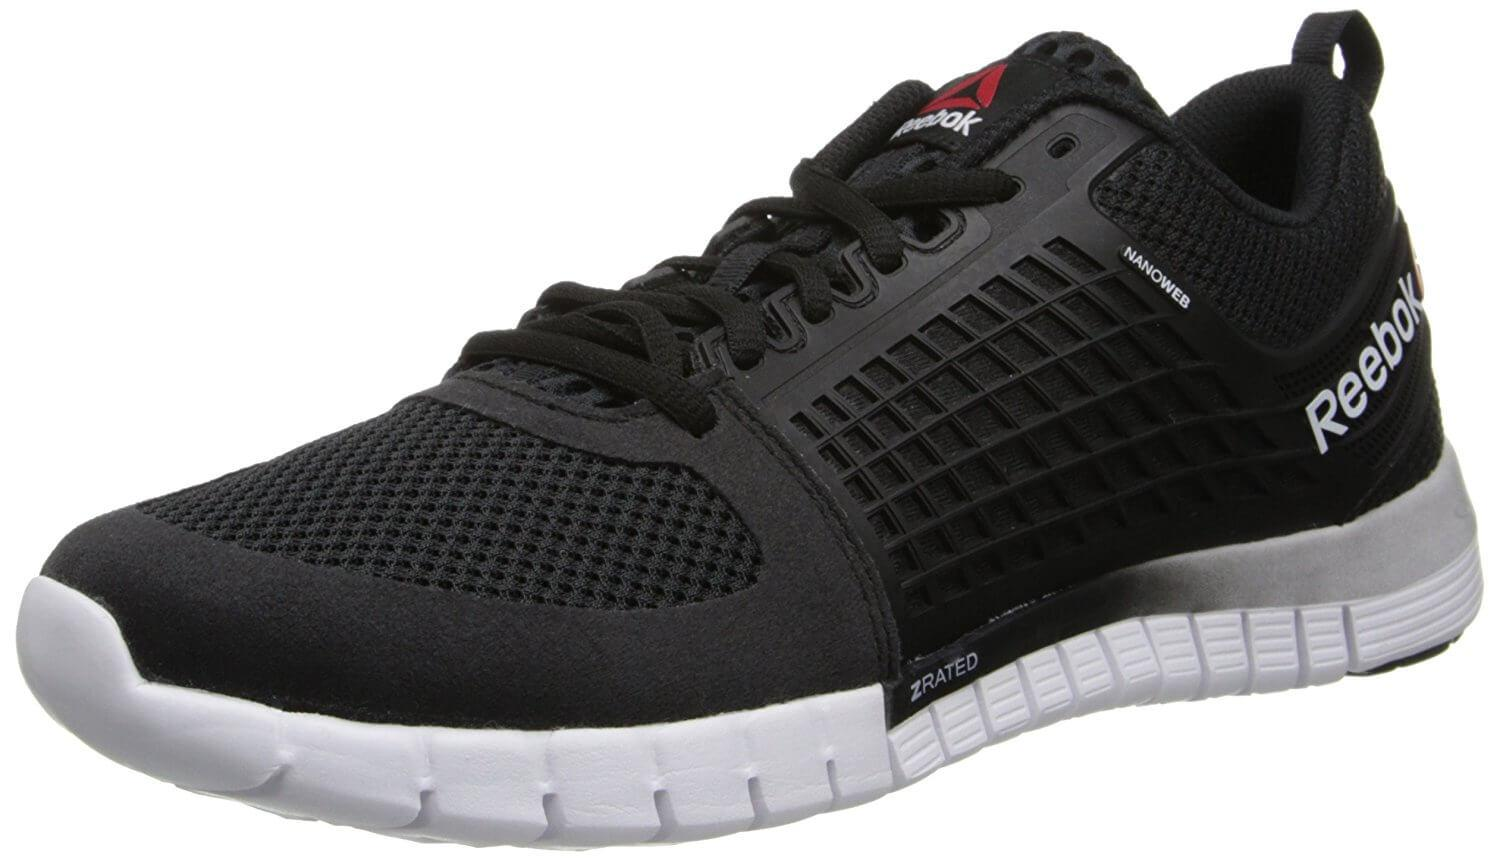 Reebok ZQuick 2.0 Reviewed - To Buy or Not in Mar 2019  a5a9d9b4e